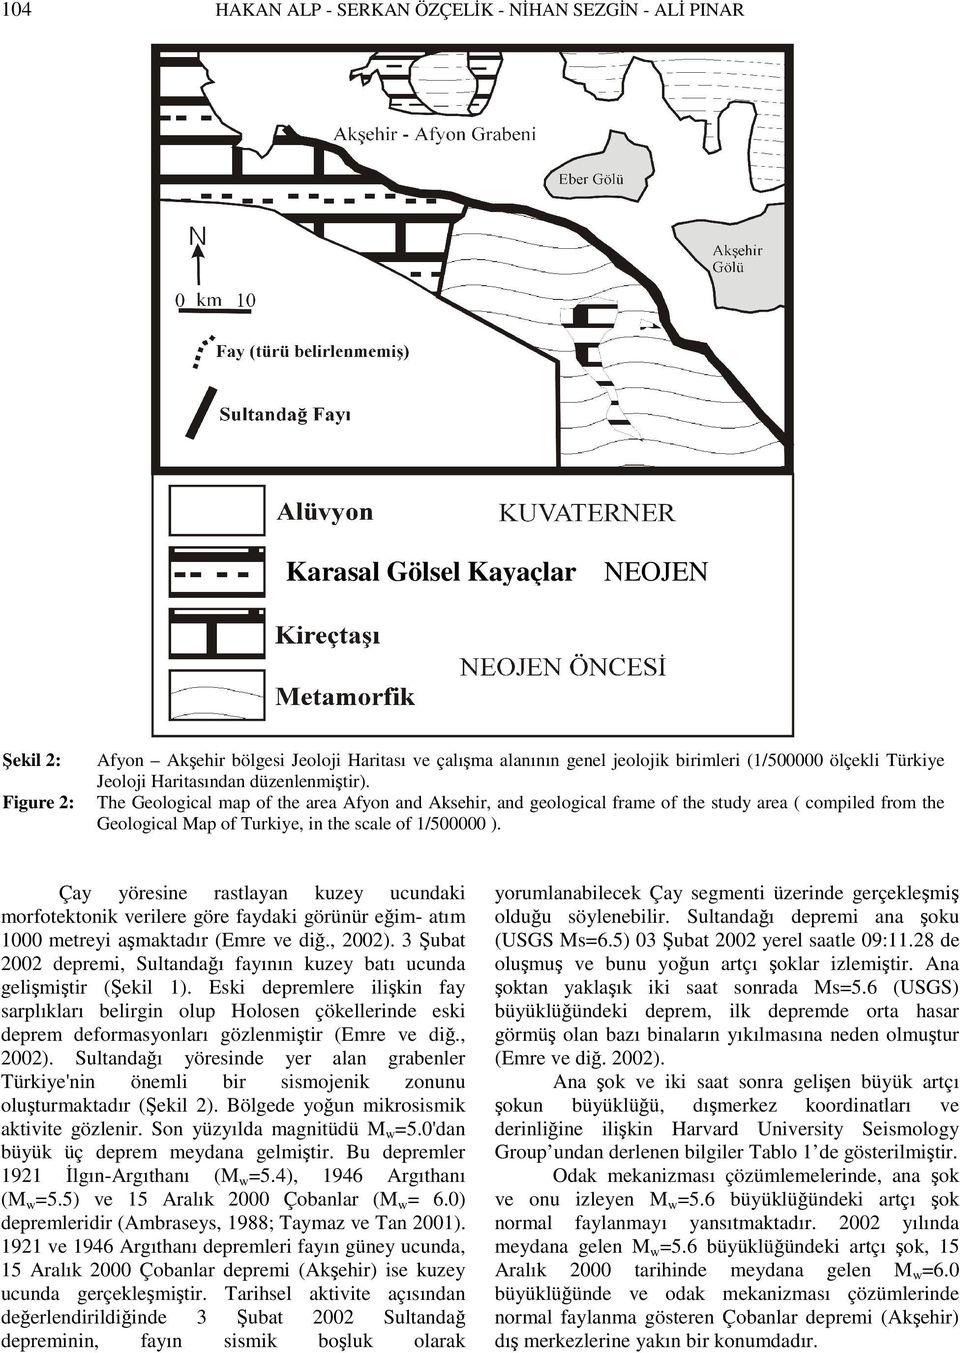 The Geological map of the area Afyon and Aksehir, and geological frame of the study area ( compiled from the Geological Map of Turkiye, in the scale of 1/500000 ).